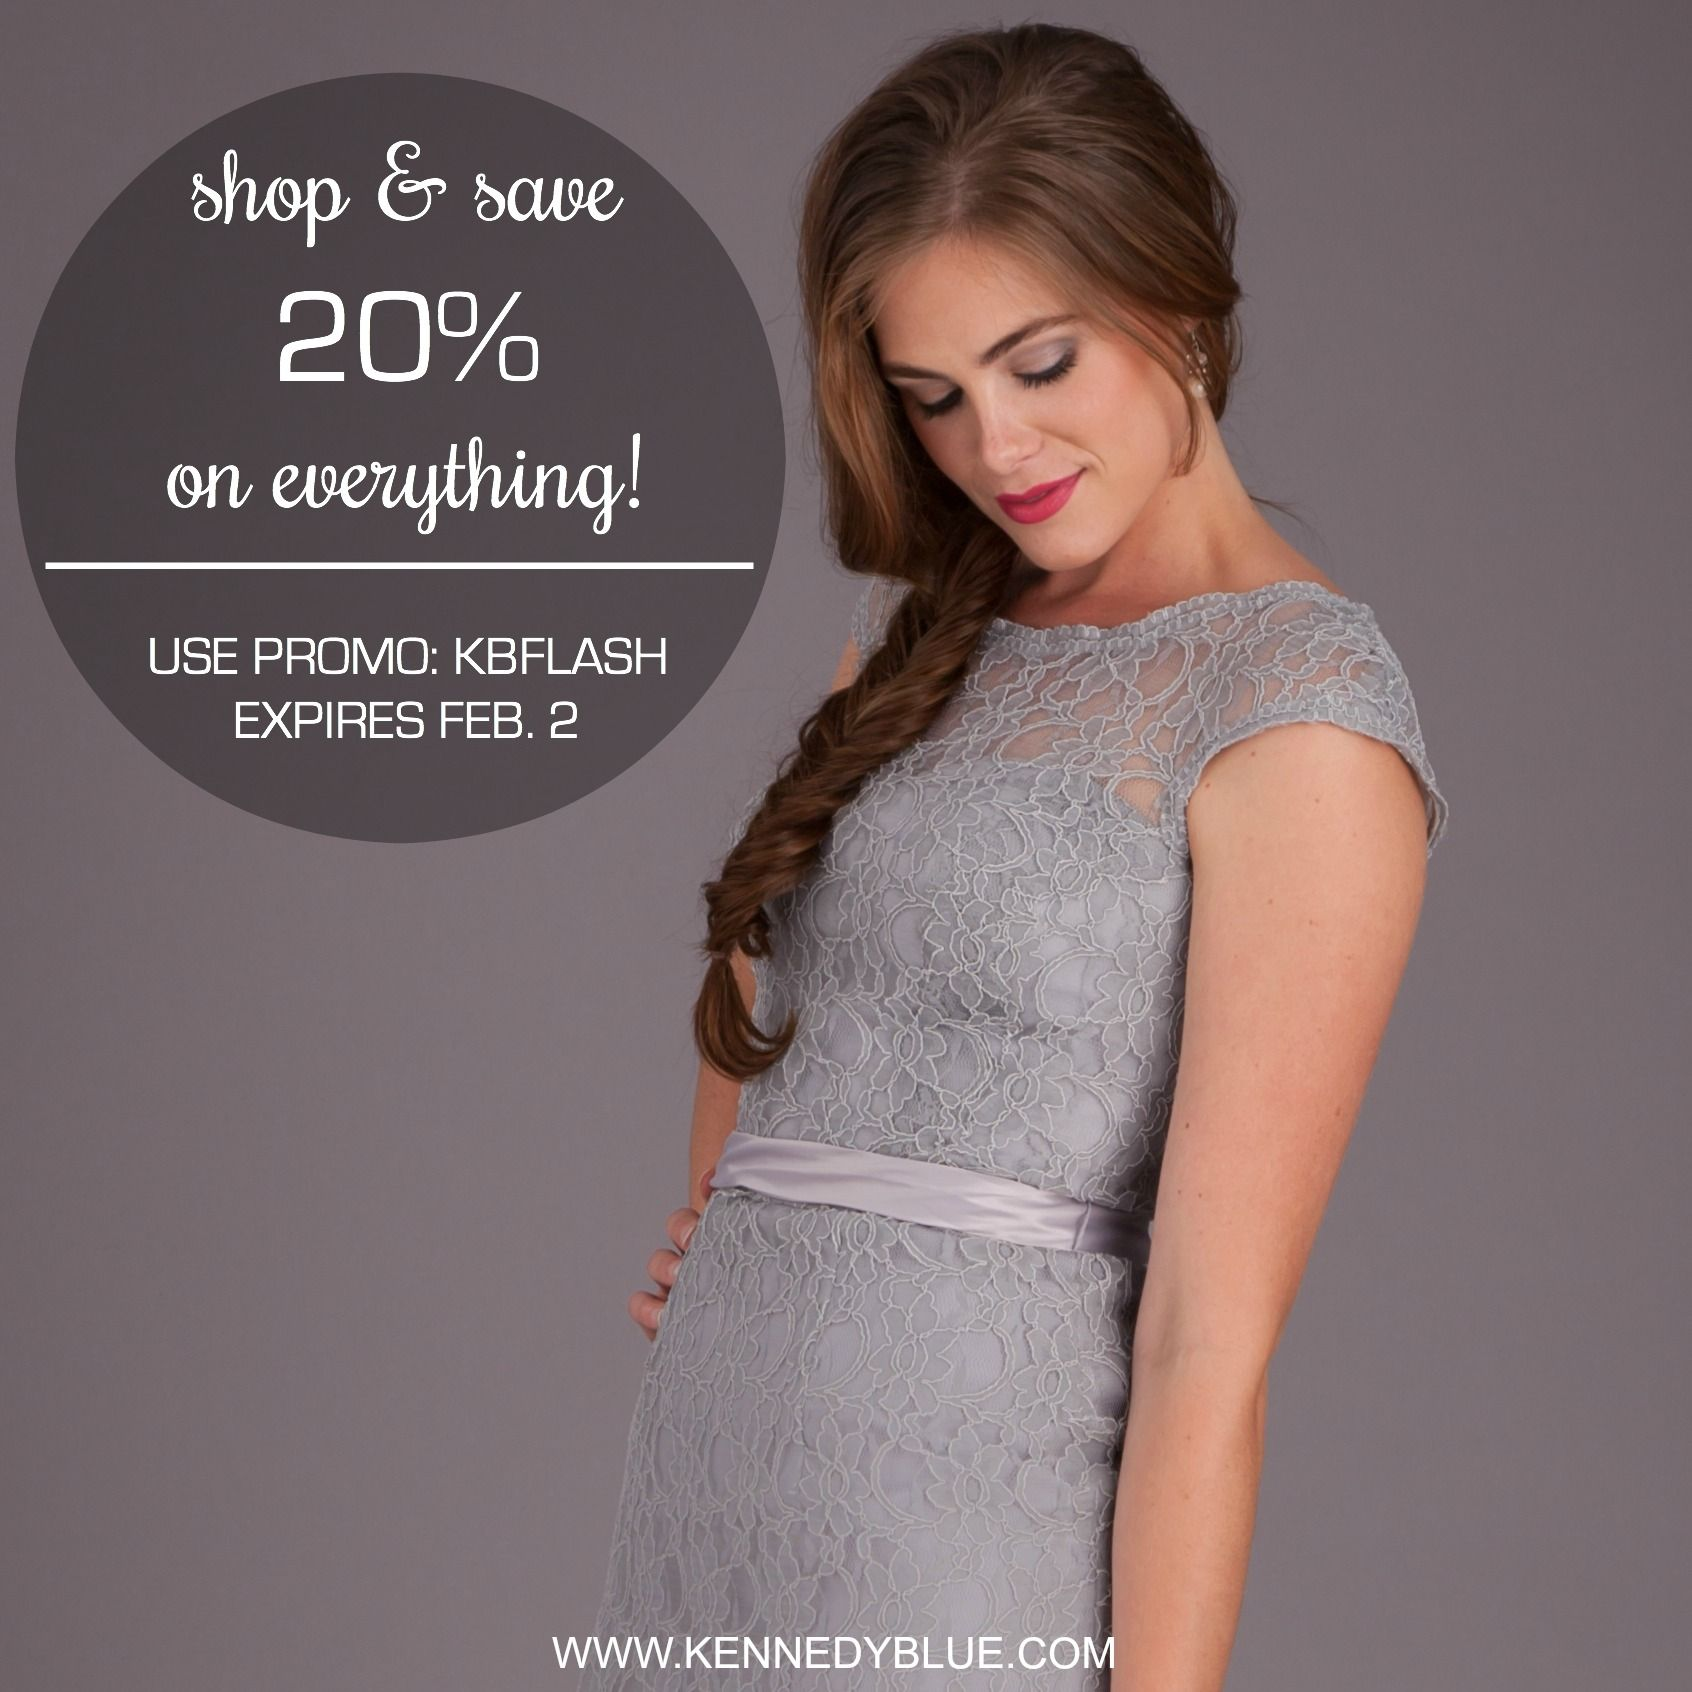 Save 20% On Your Entire Kennedy Blue Purchase When You